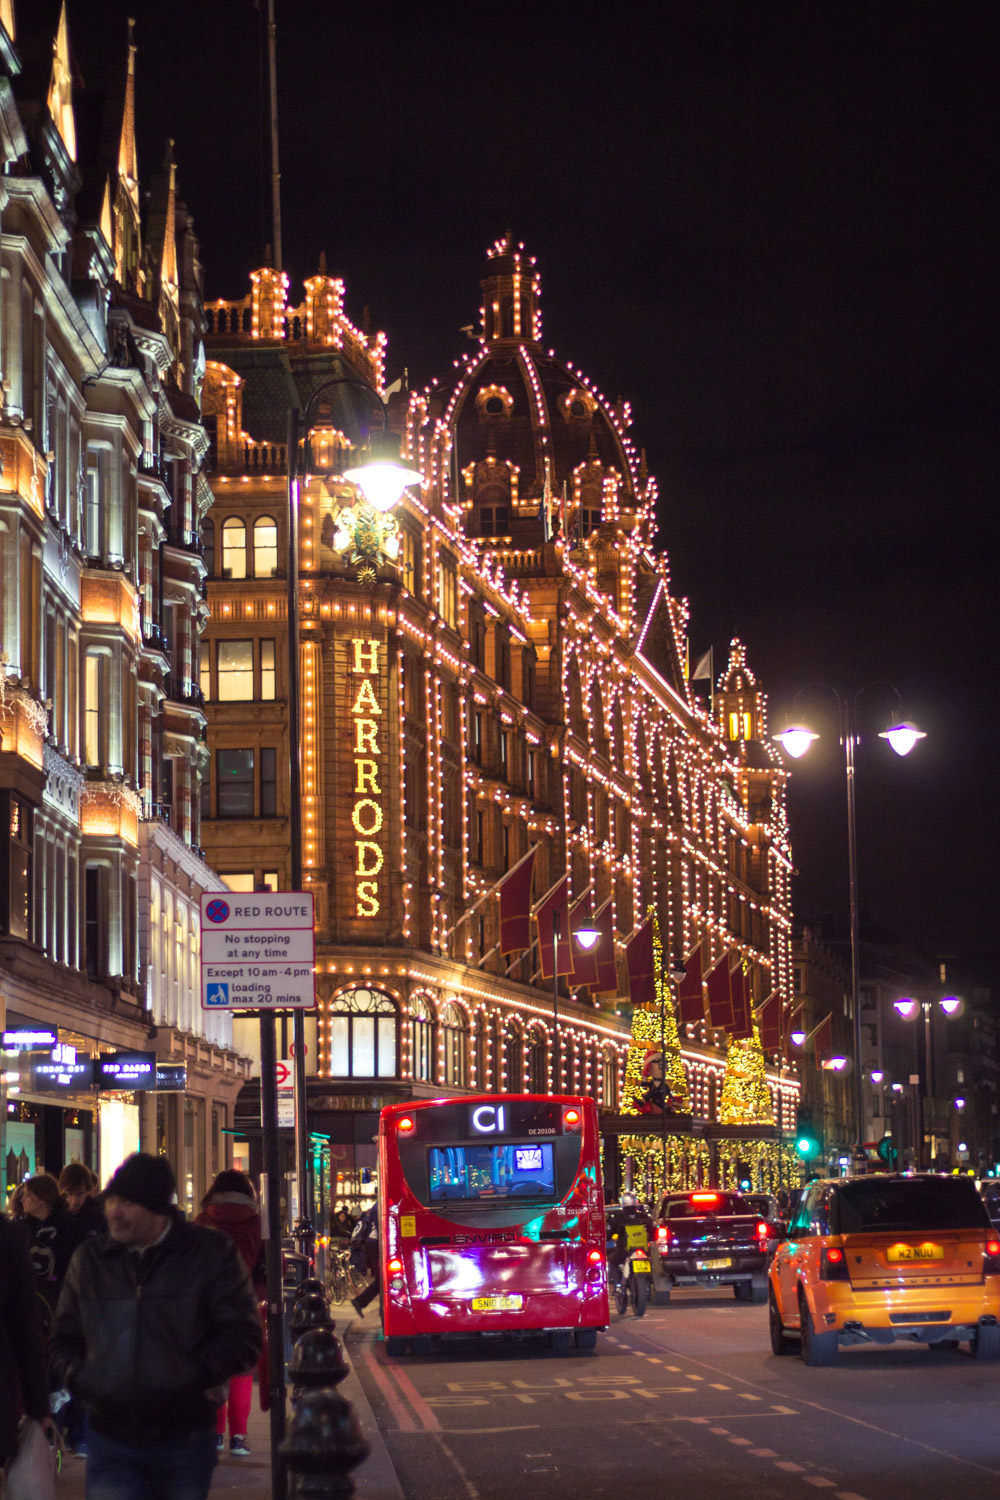 Harrods lit up at night for Christmas in London